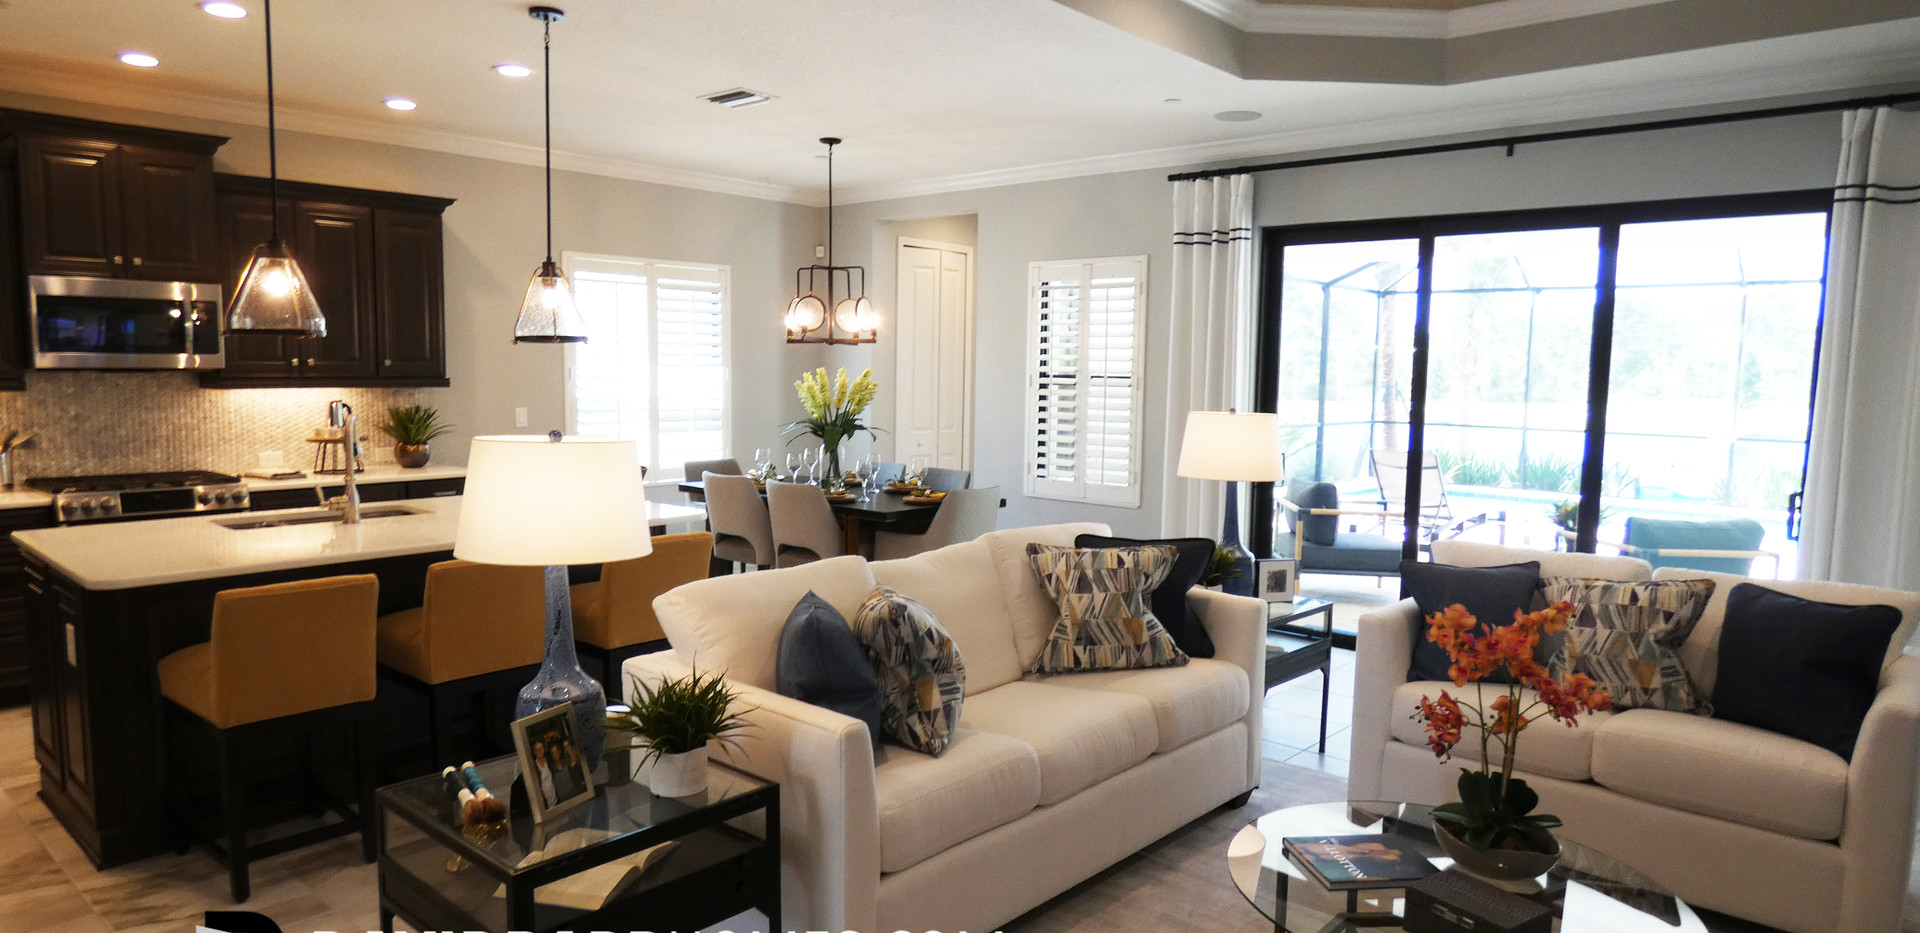 Vicenza White Star model home family room